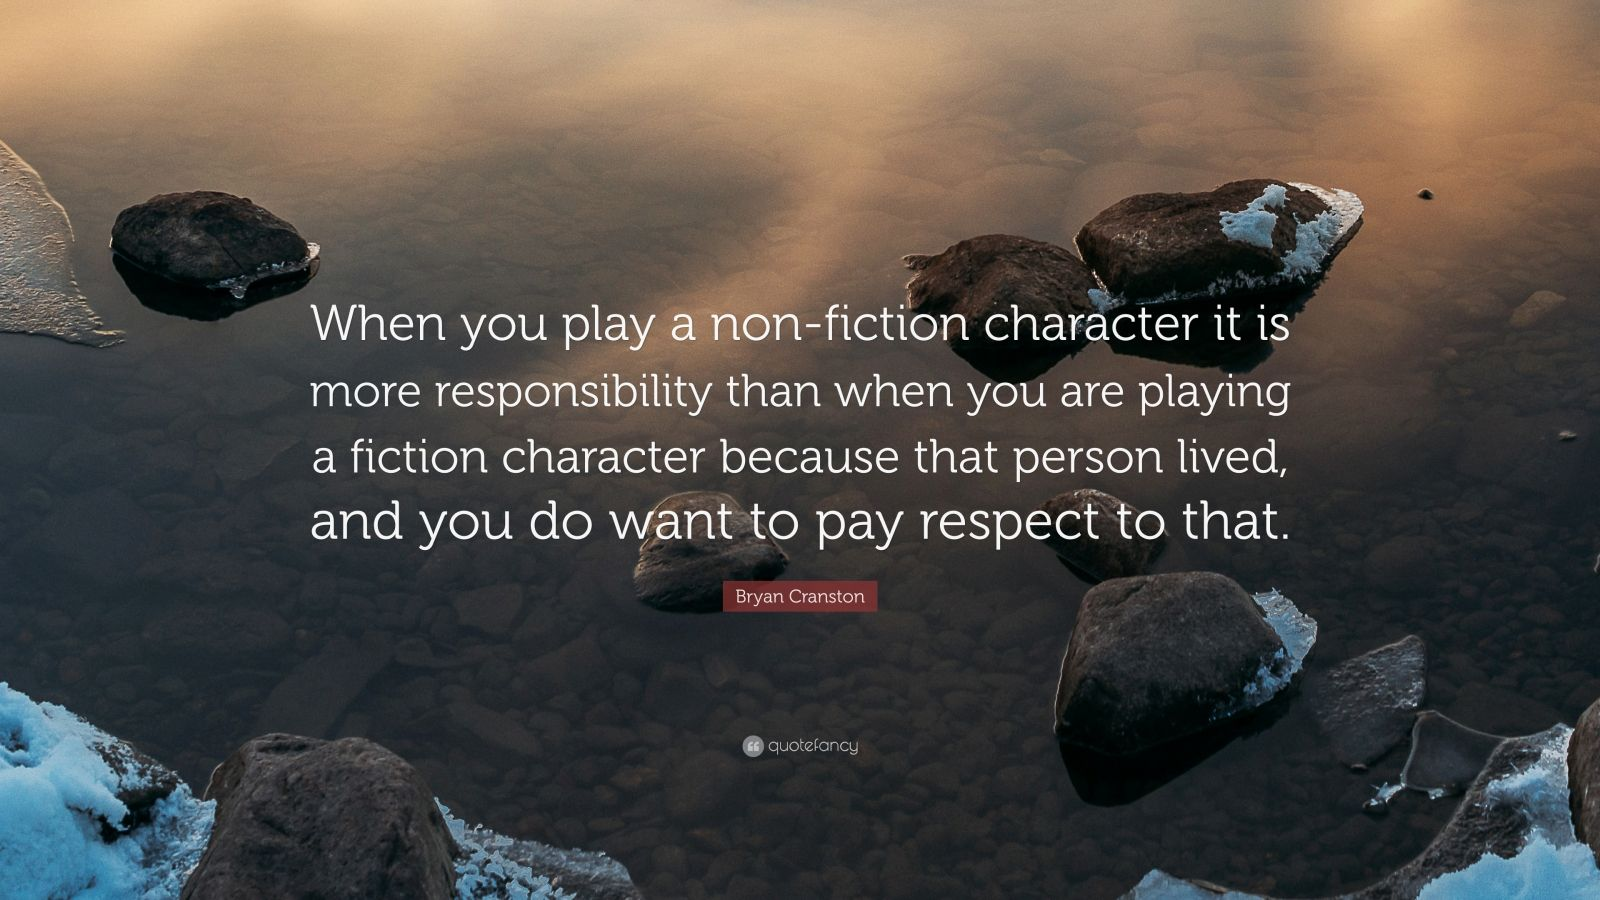 """Bryan Cranston Quote: """"When you play a non-fiction character it is more responsibility than when you are playing a fiction character because that person lived, and you do want to pay respect to that."""""""